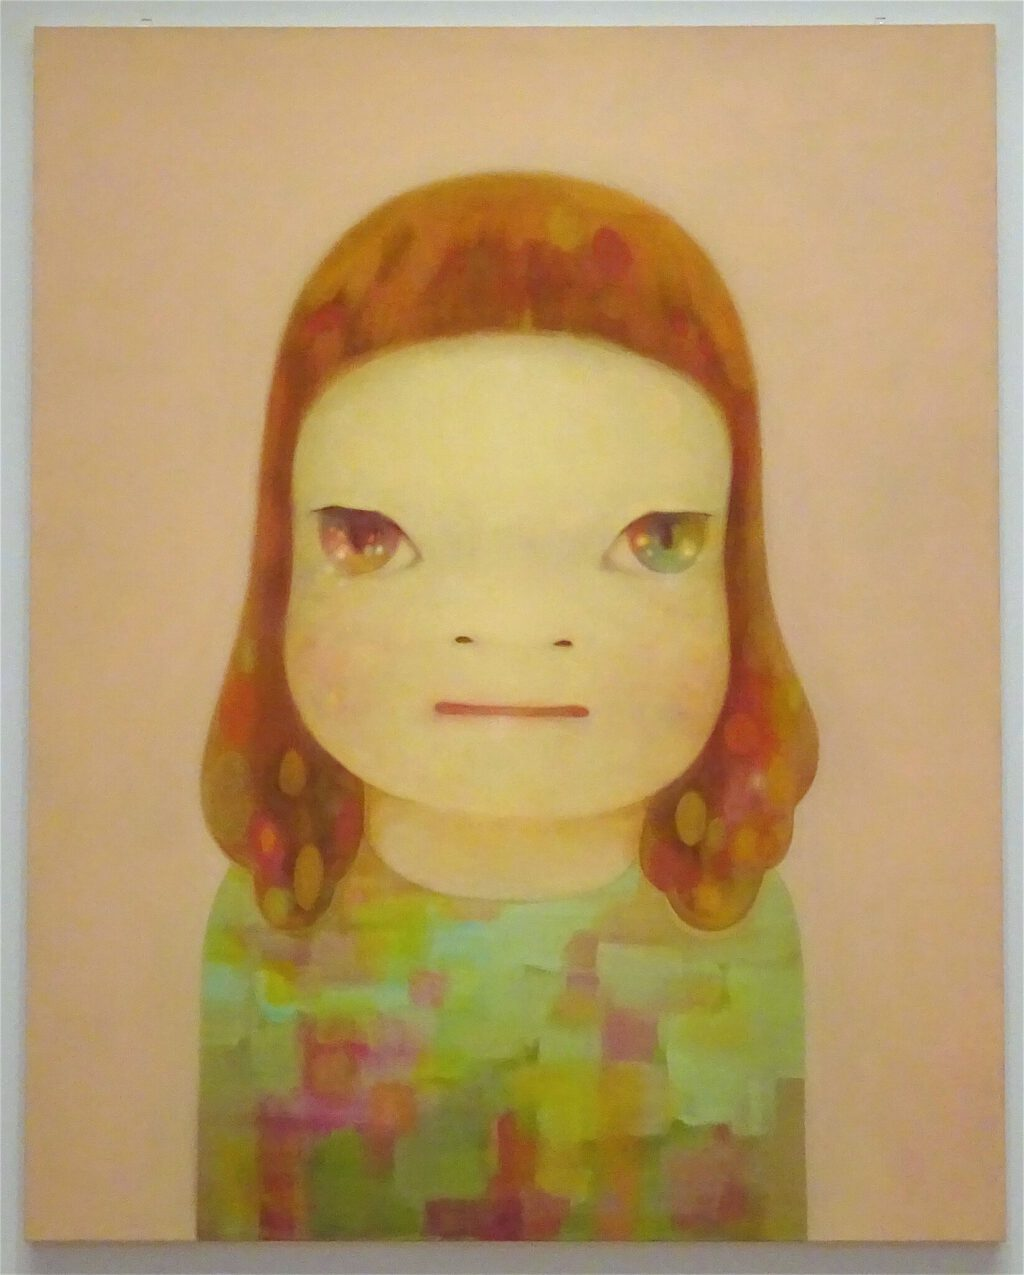 NARA Yoshitomo 奈良美智 Miss Spring, 2012 @ 奈良美智 for better or worse 個展 solo show 2017, 豊田市美術館 Toyota Municipal Museum of Art, courtesy creative common sense